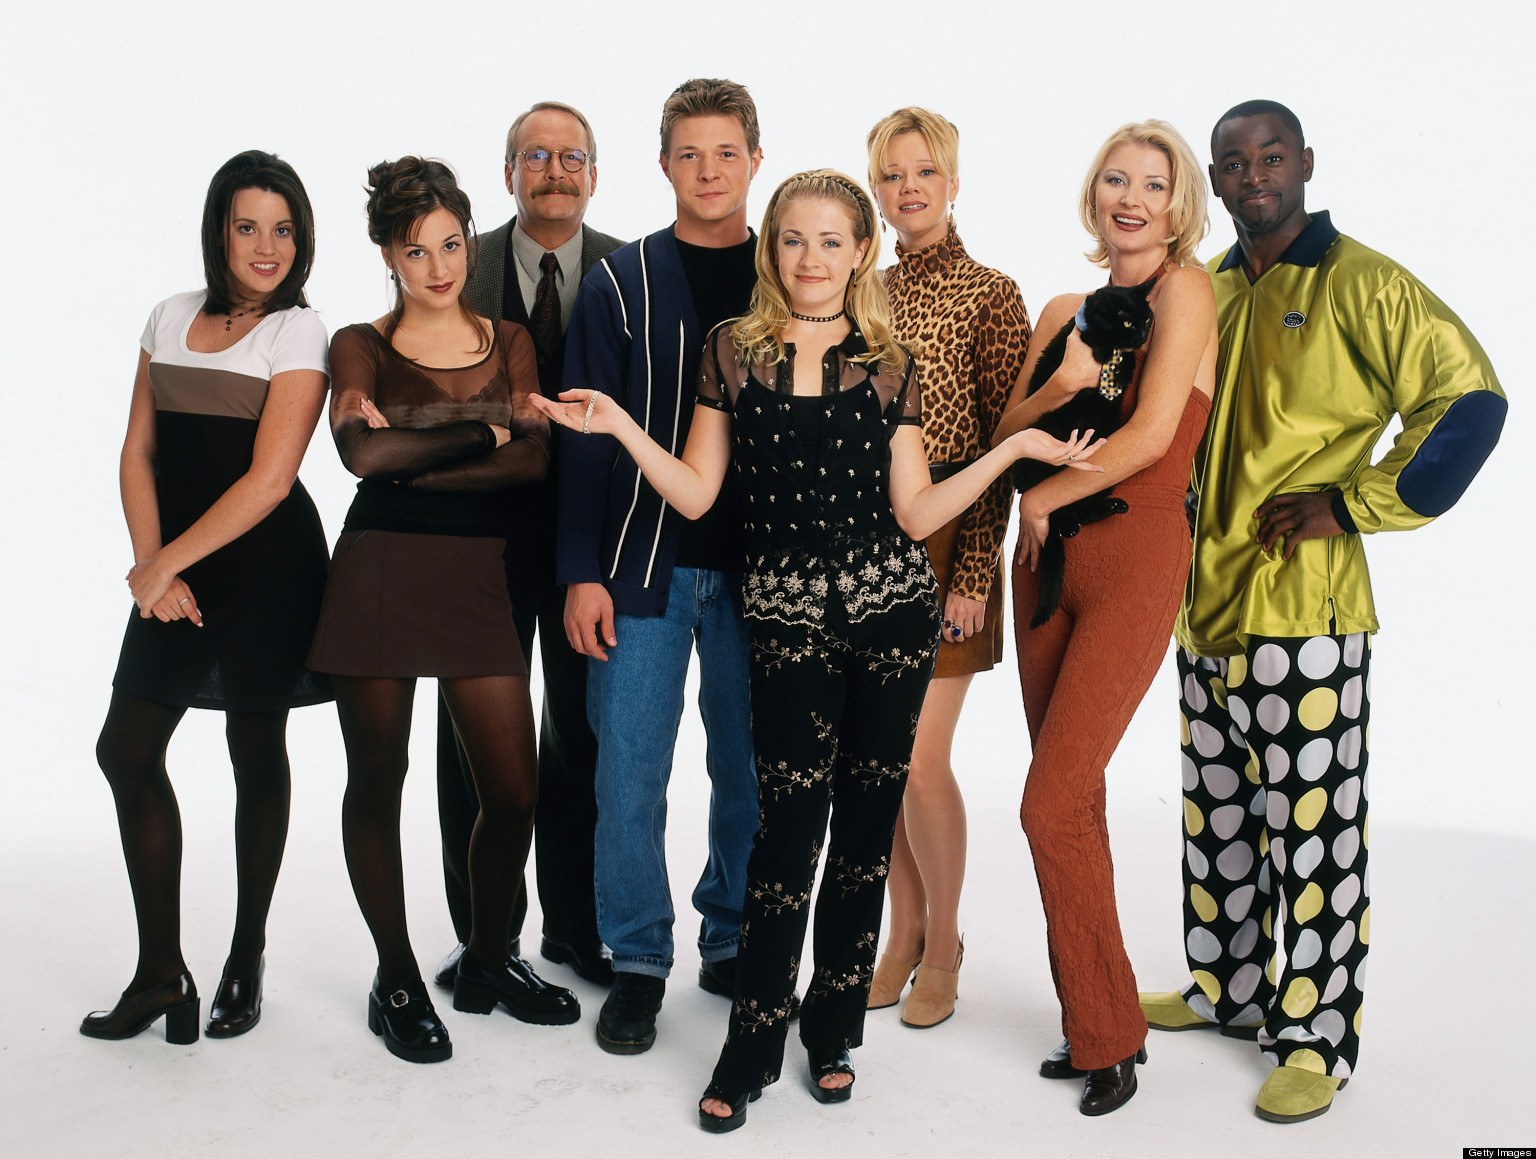 o SABRINA THE TEENAGE WITCH facebook 8 Things You Didn't Know About Sabrina the Teenage Witch